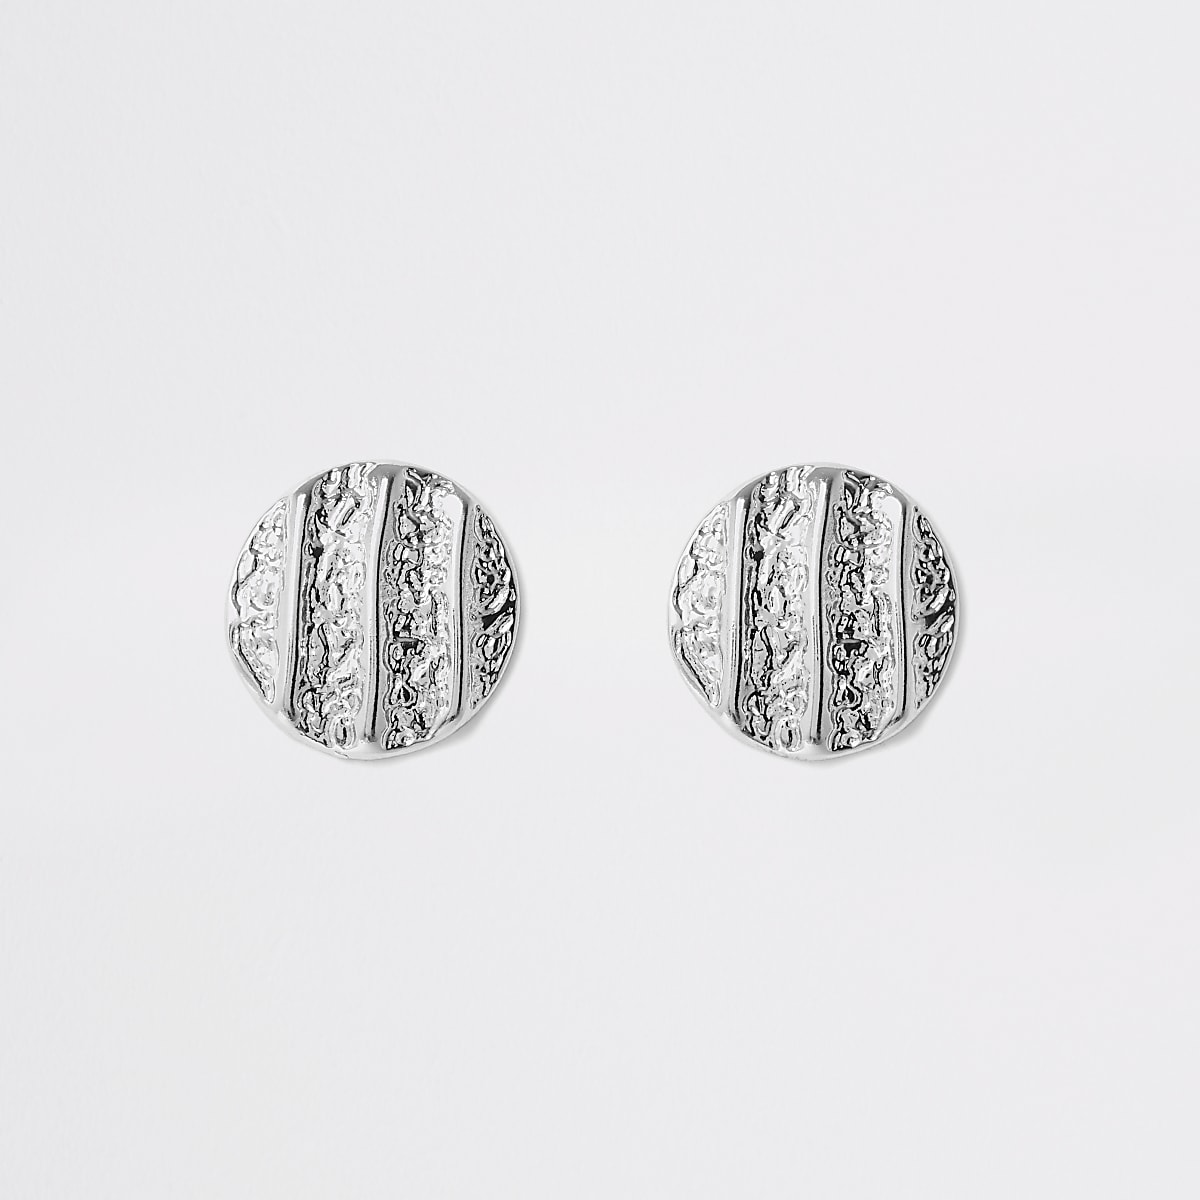 Silver color textured stud earrings